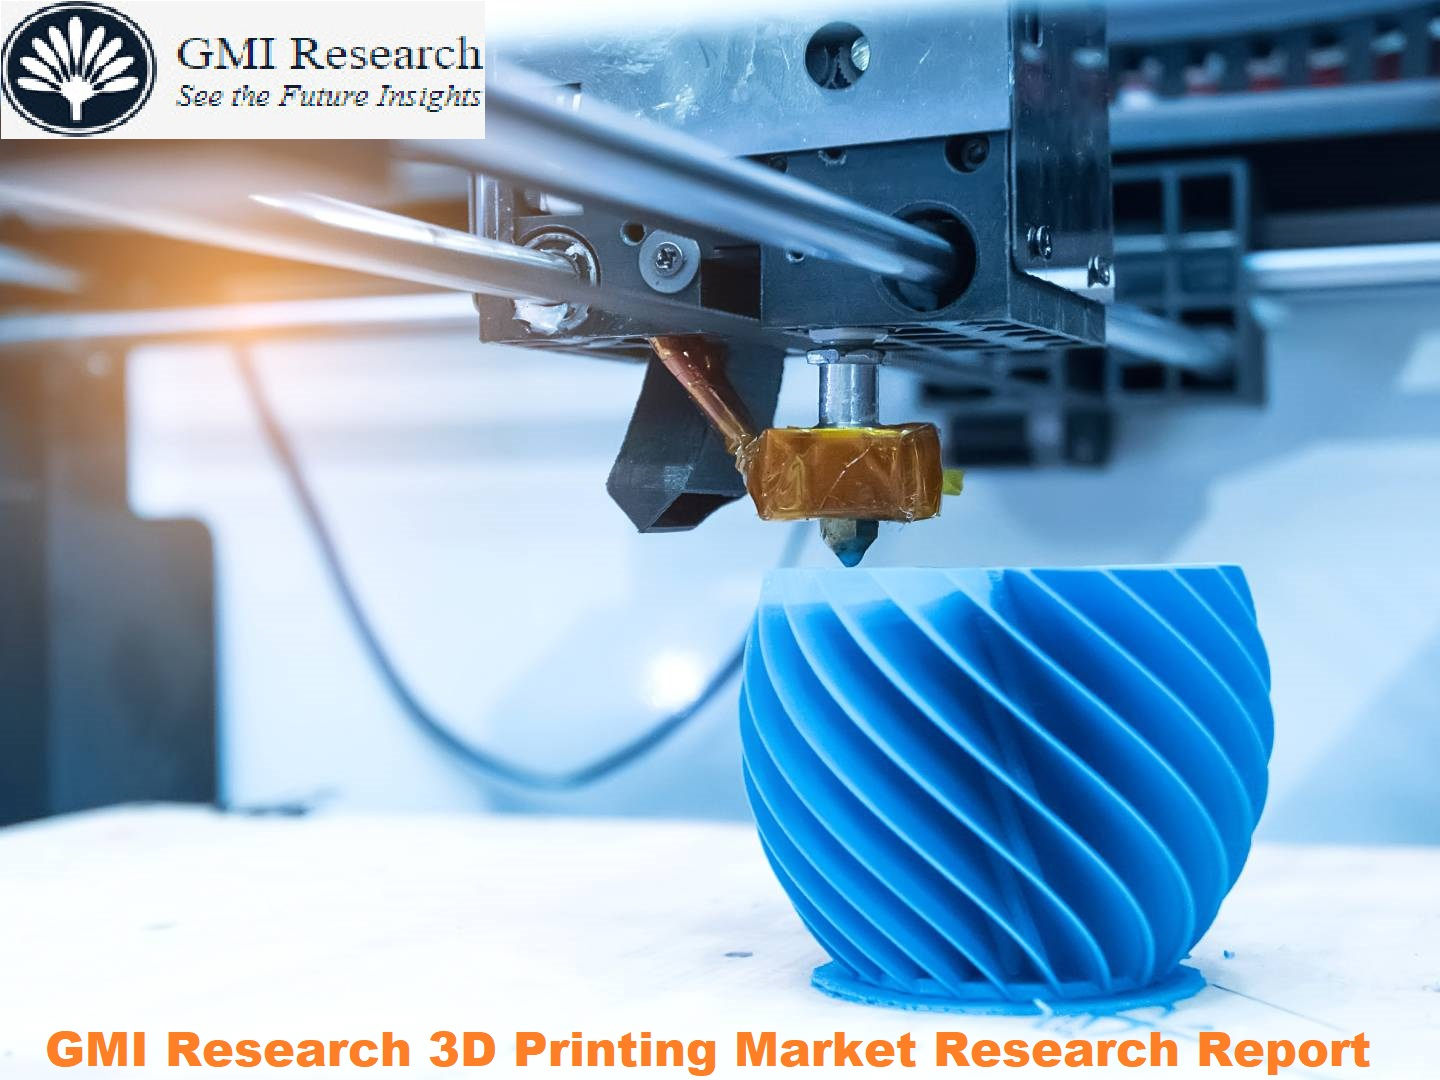 3D Printing Market Share, Size & Trends Analysis | Industry Forecast Report, 2020-2027